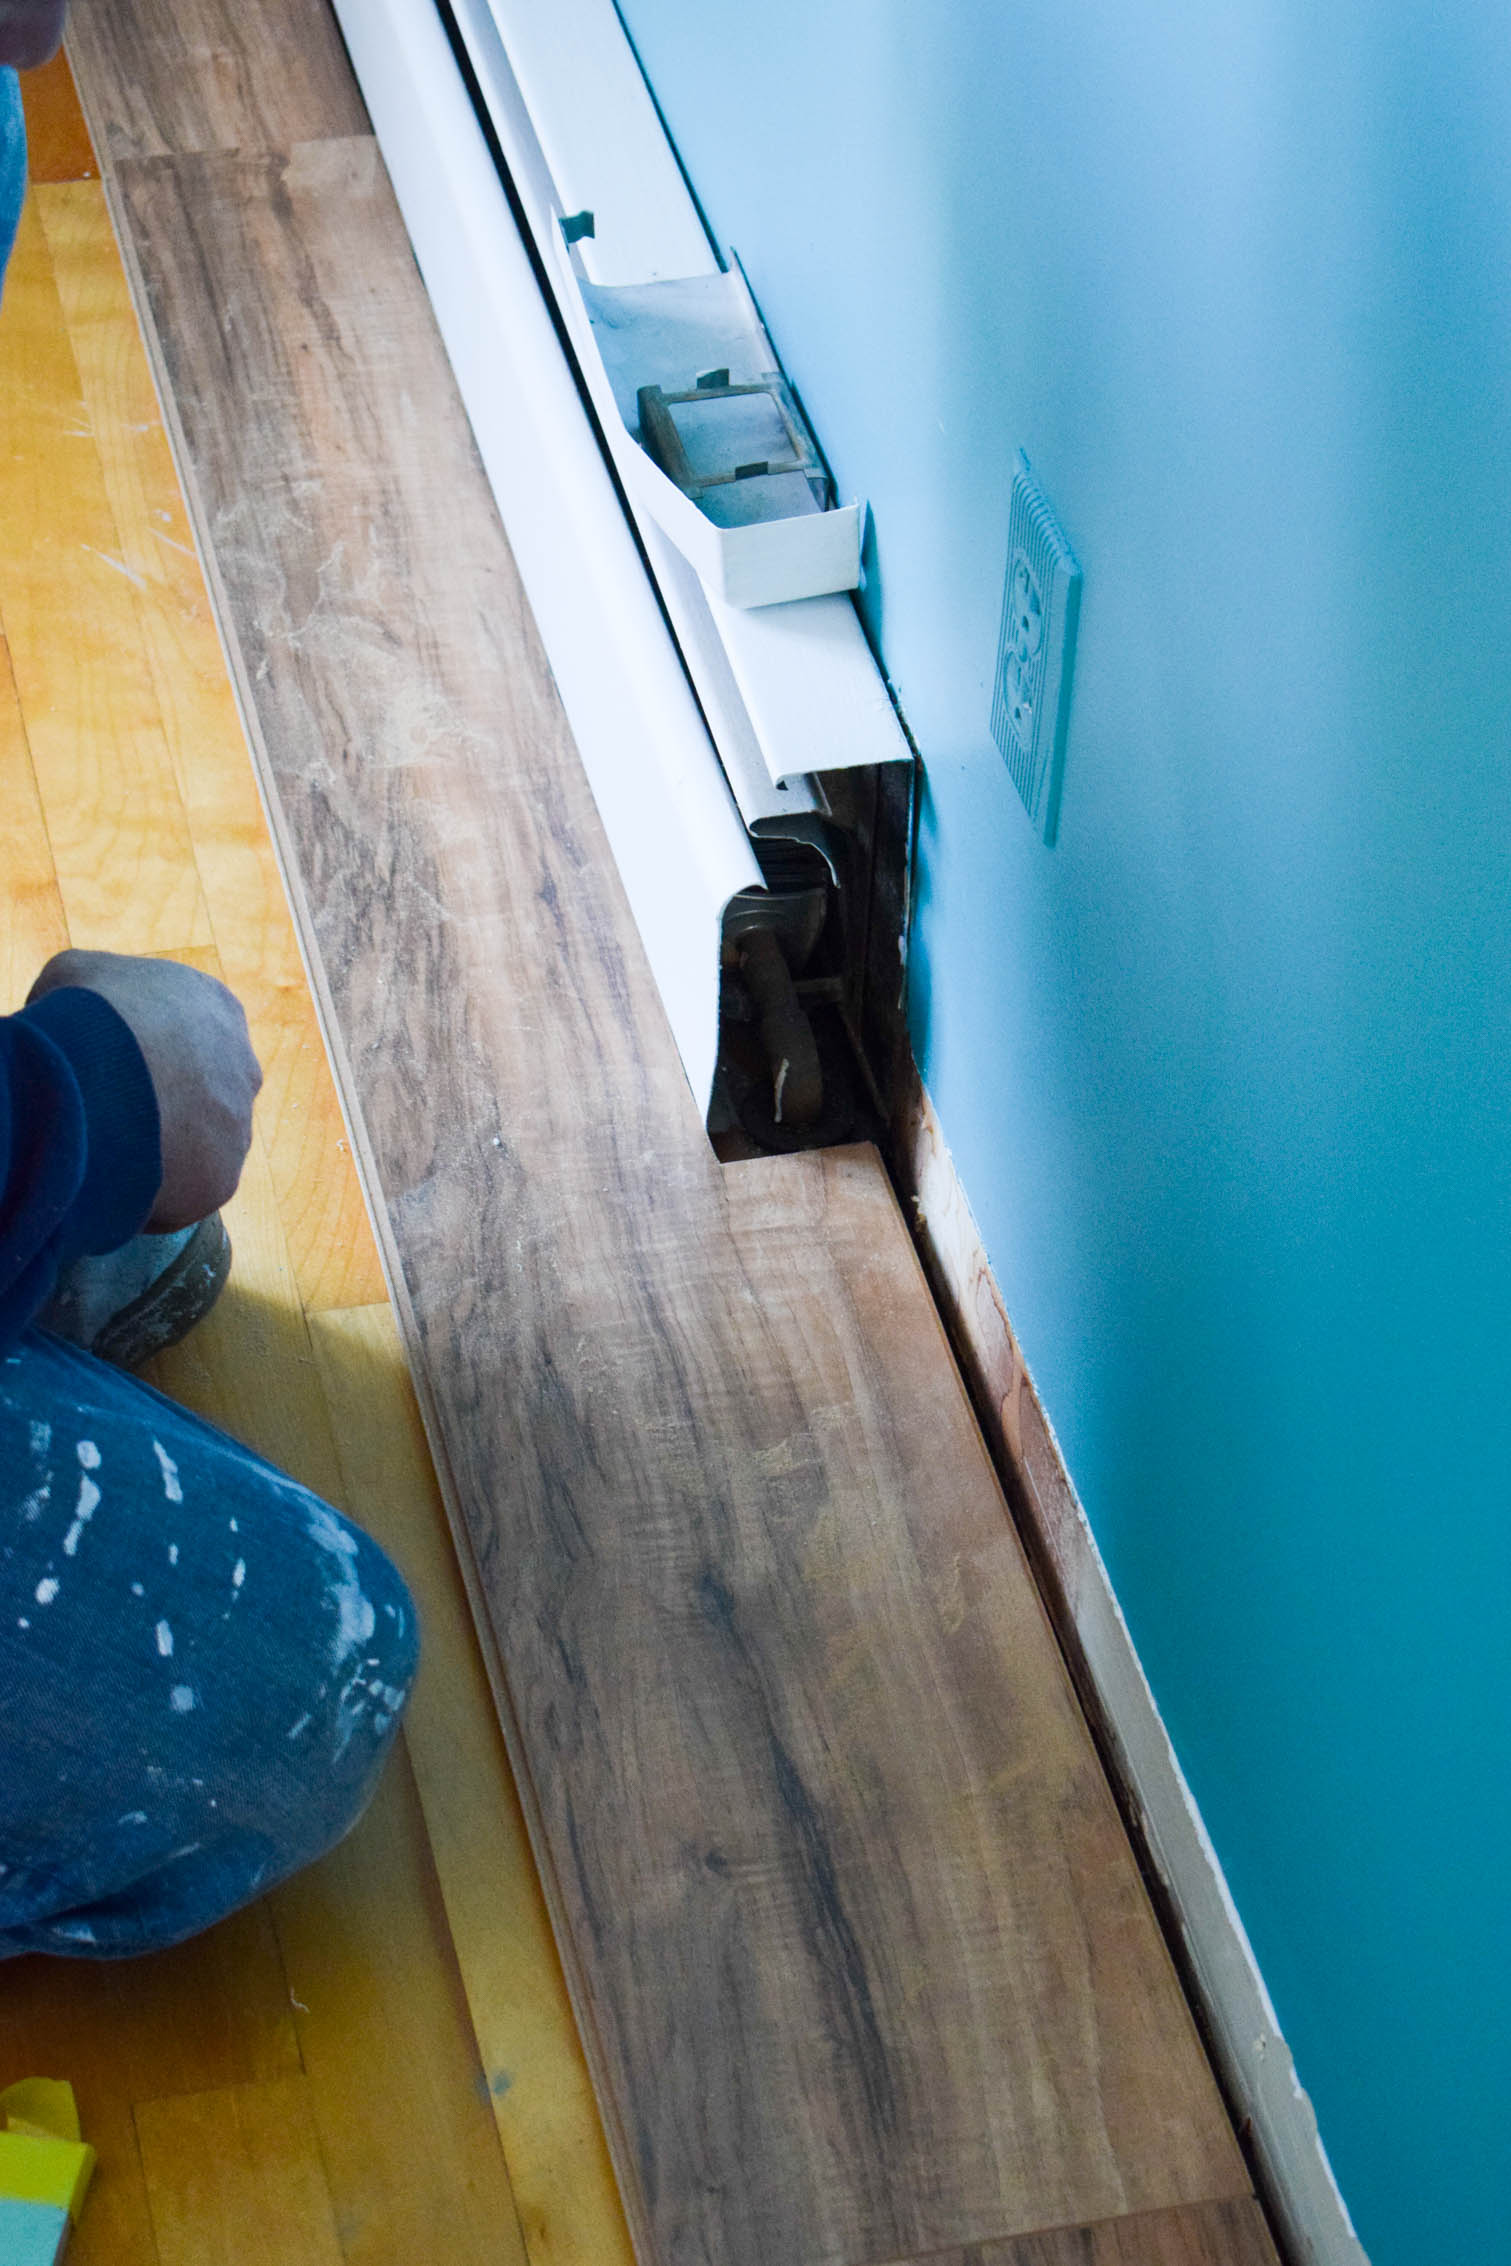 Ever wondered how to install laminate flooring? Using our Golden Select Laminate flooring (in sandstone), we walk you through the process in our dining room.